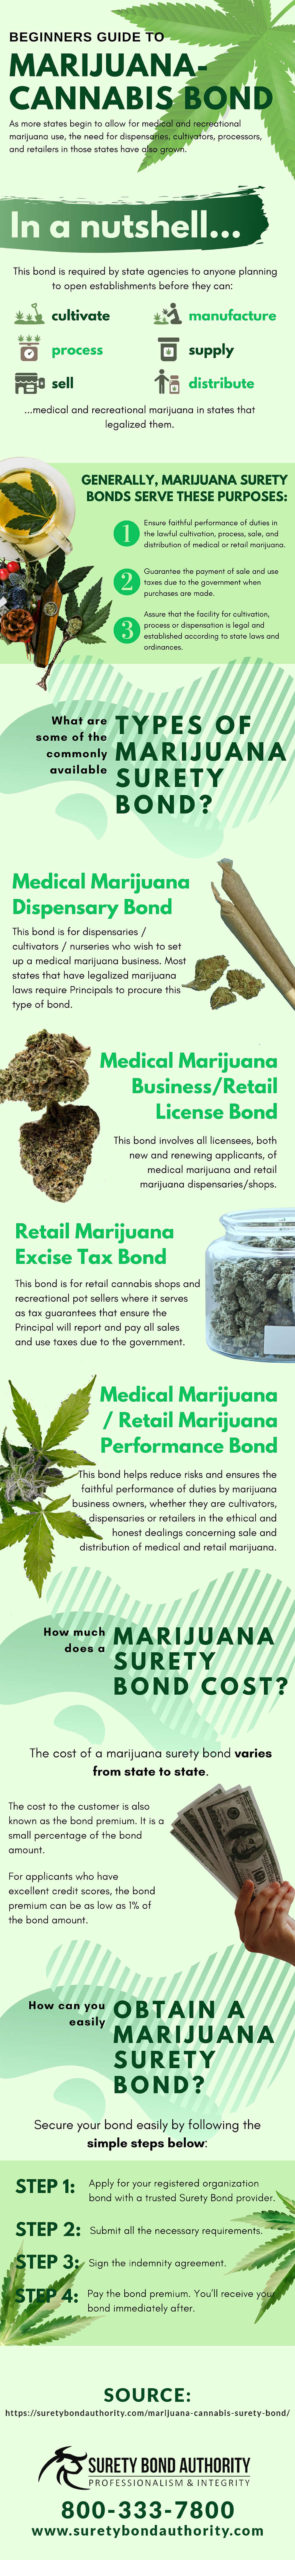 Marijuana-Cannabis Bond